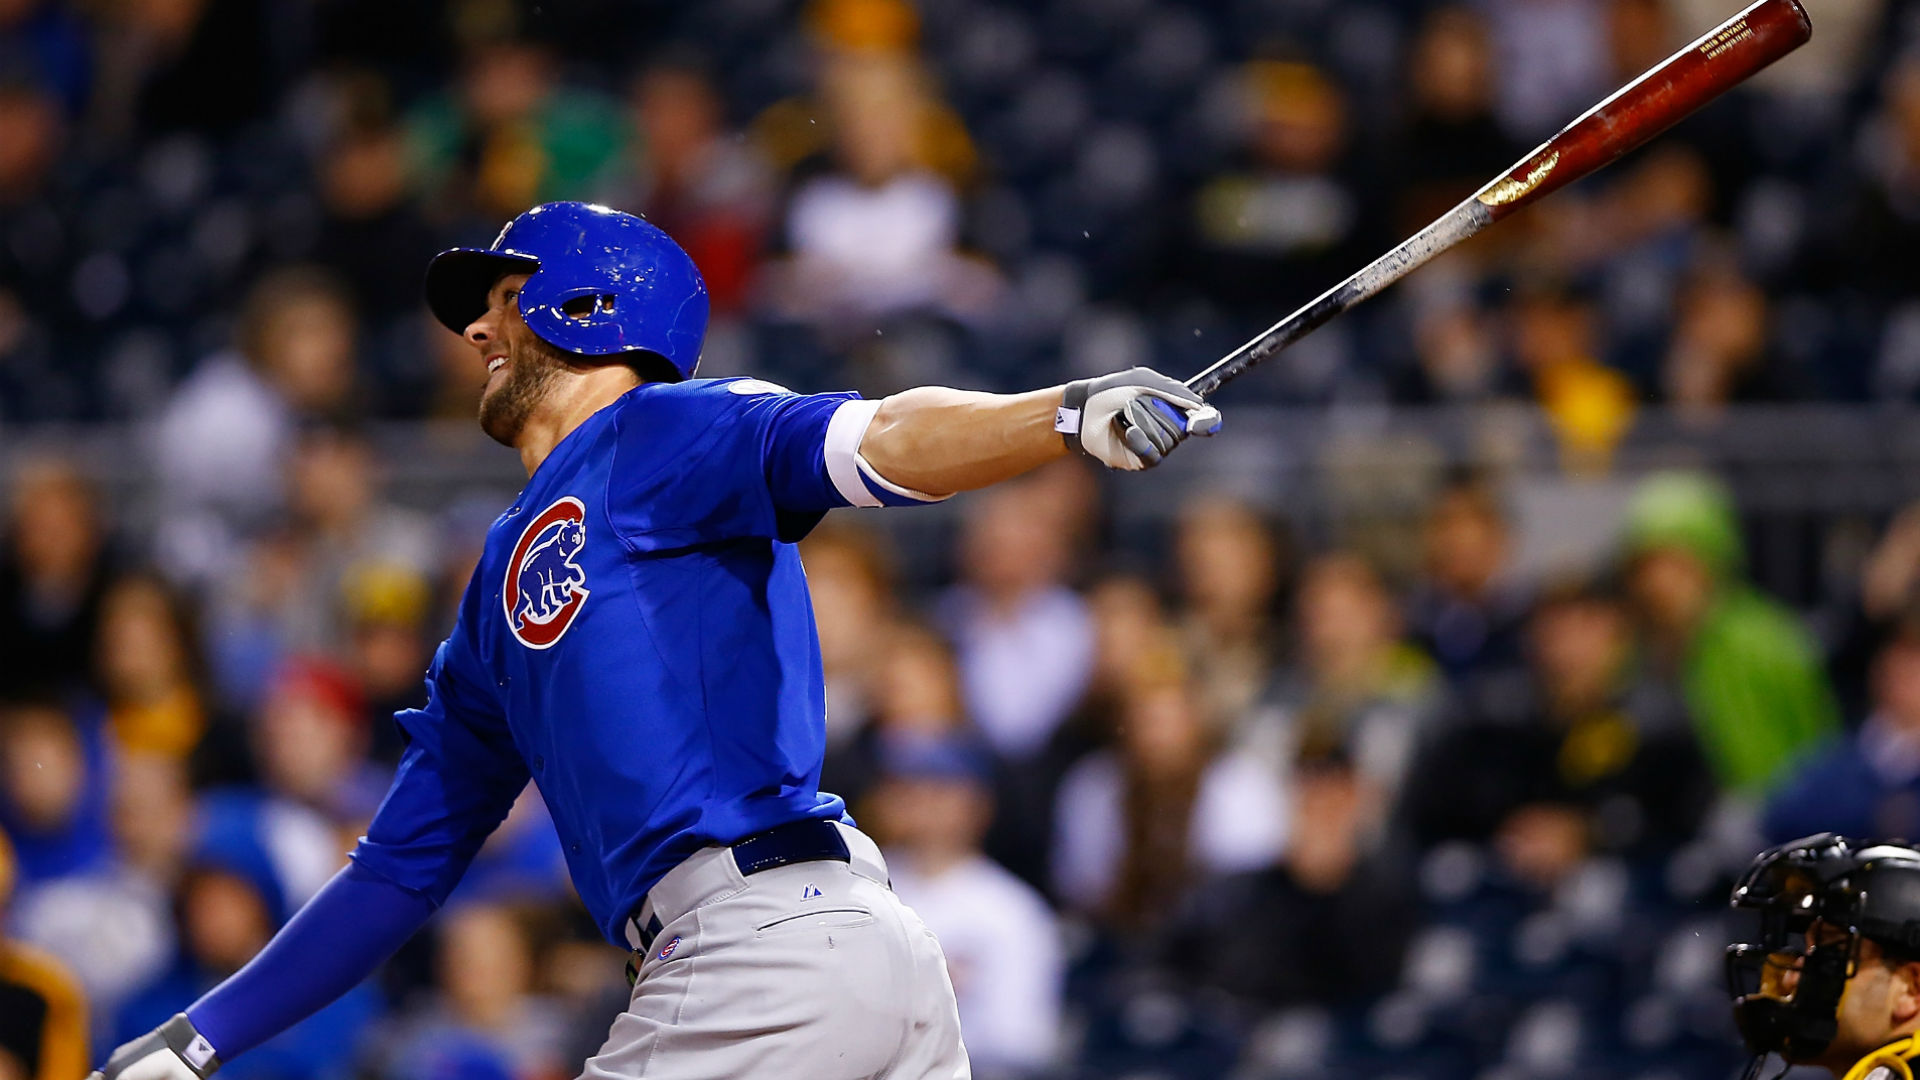 MLB Nightly 9: Kris Bryant helps lead Cubs past Pirates with three-hit night